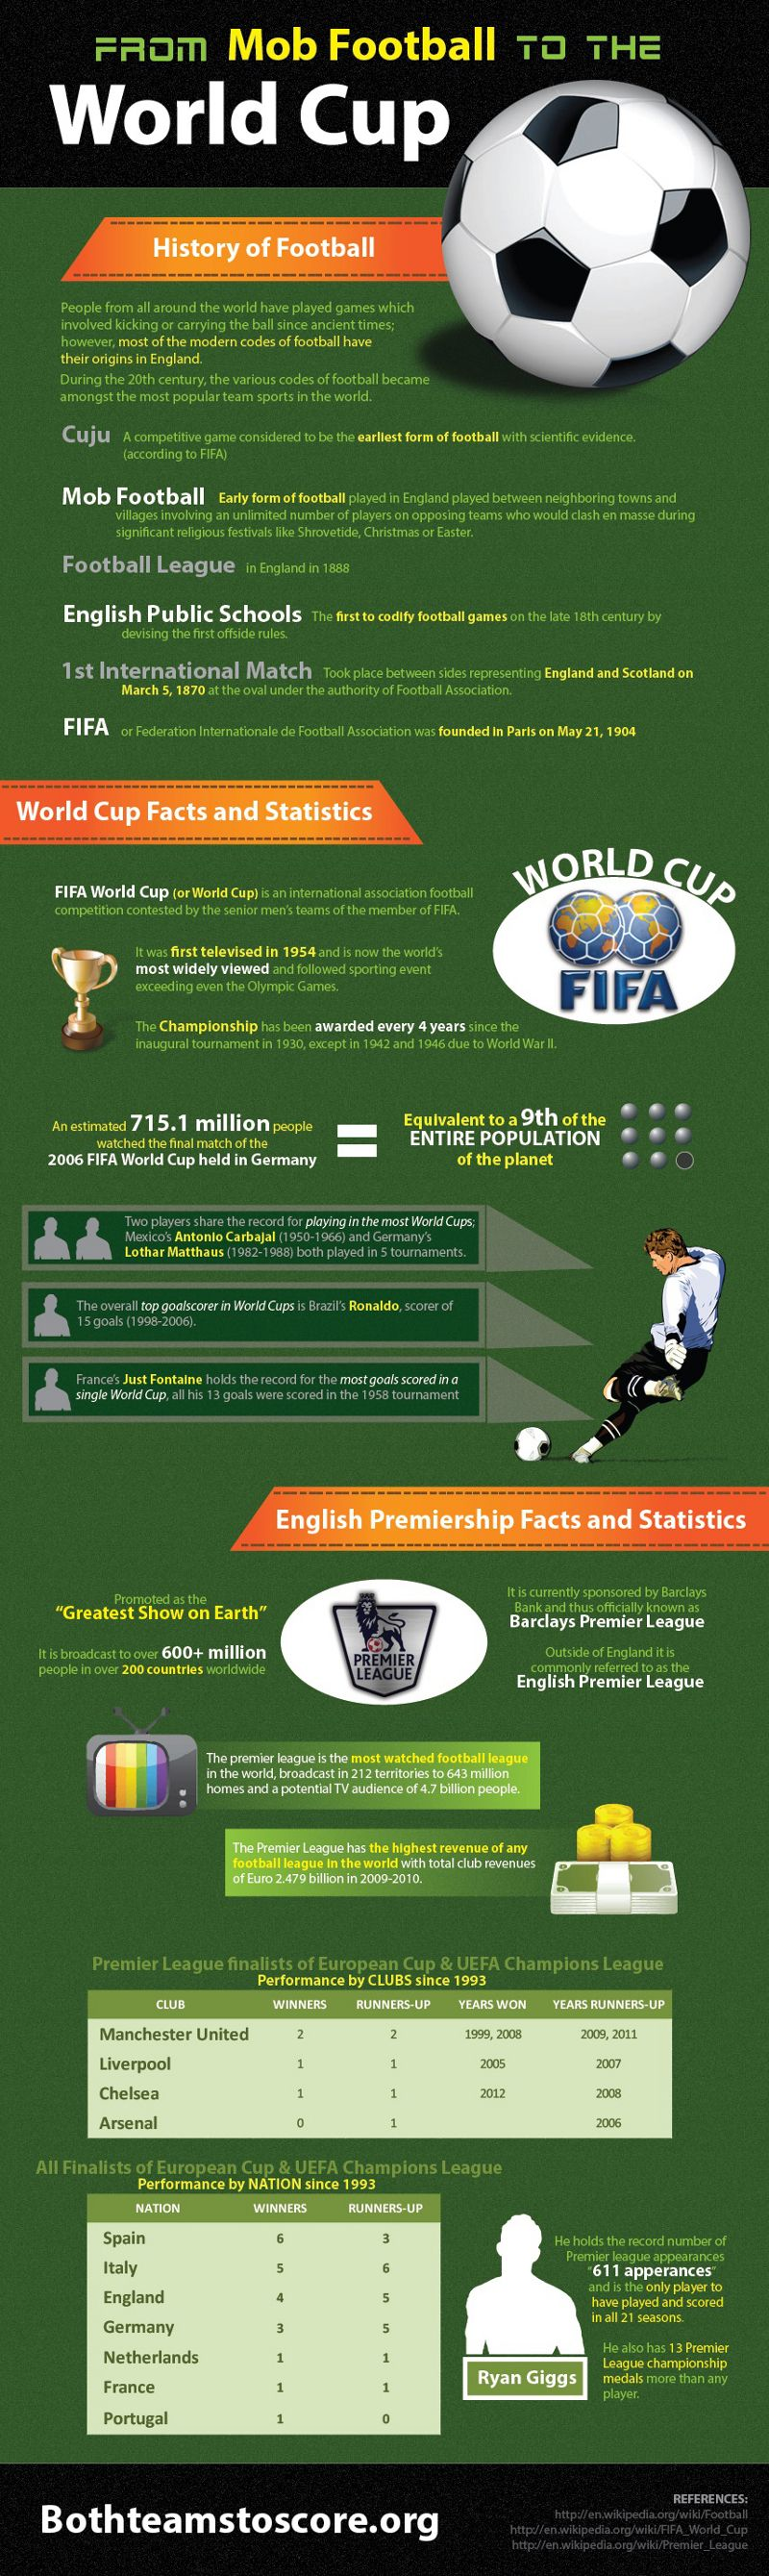 Football Pitch Soccer Field Vocabulary In English Esl Esol Football Soccer Worldcup English Vocabulary Woodward English Learn English